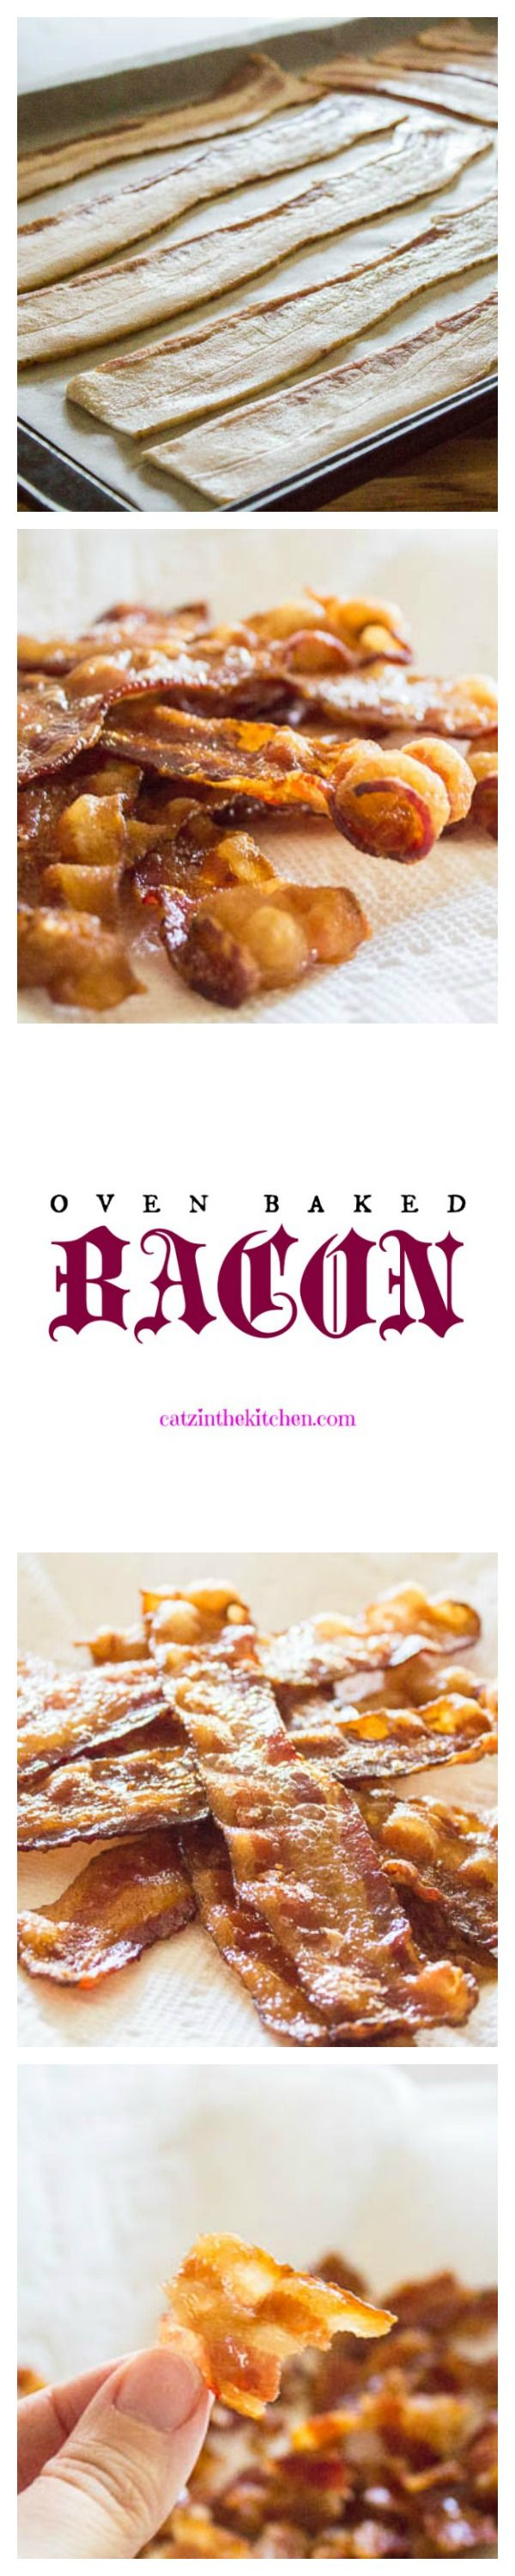 25+ Best Oven Baked Bacon Ideas On Pinterest  Oven Bacon, Turkey Bacon  Recipes And Bacon